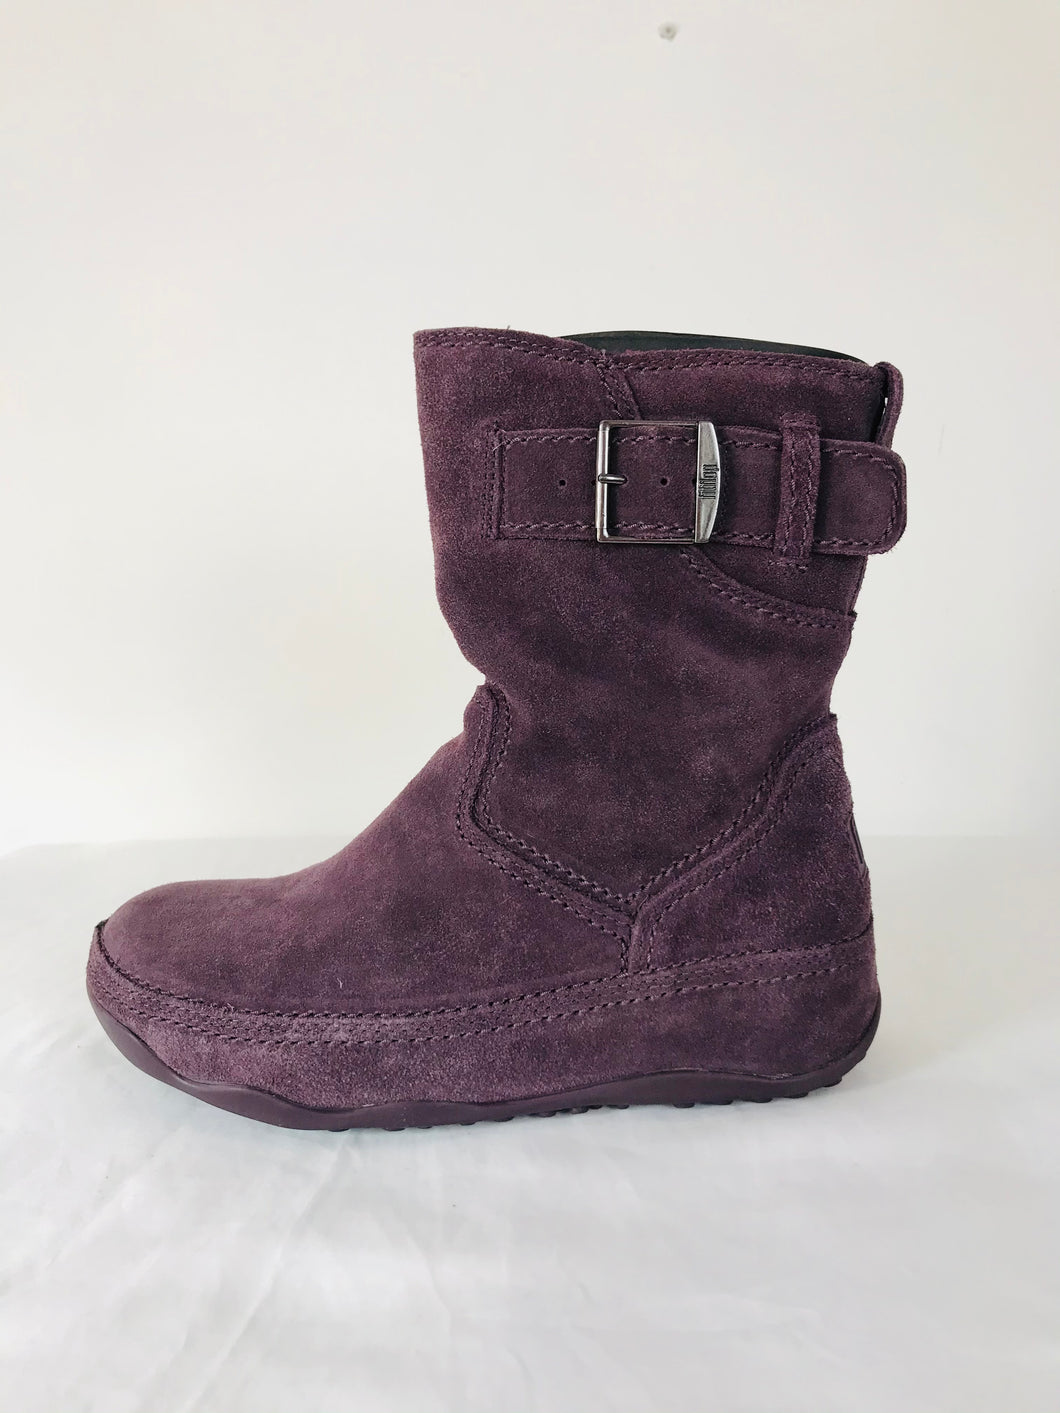 Fitflop Women's Short Suede Superboot Boots NWT | UK5 | Amethyst Purple